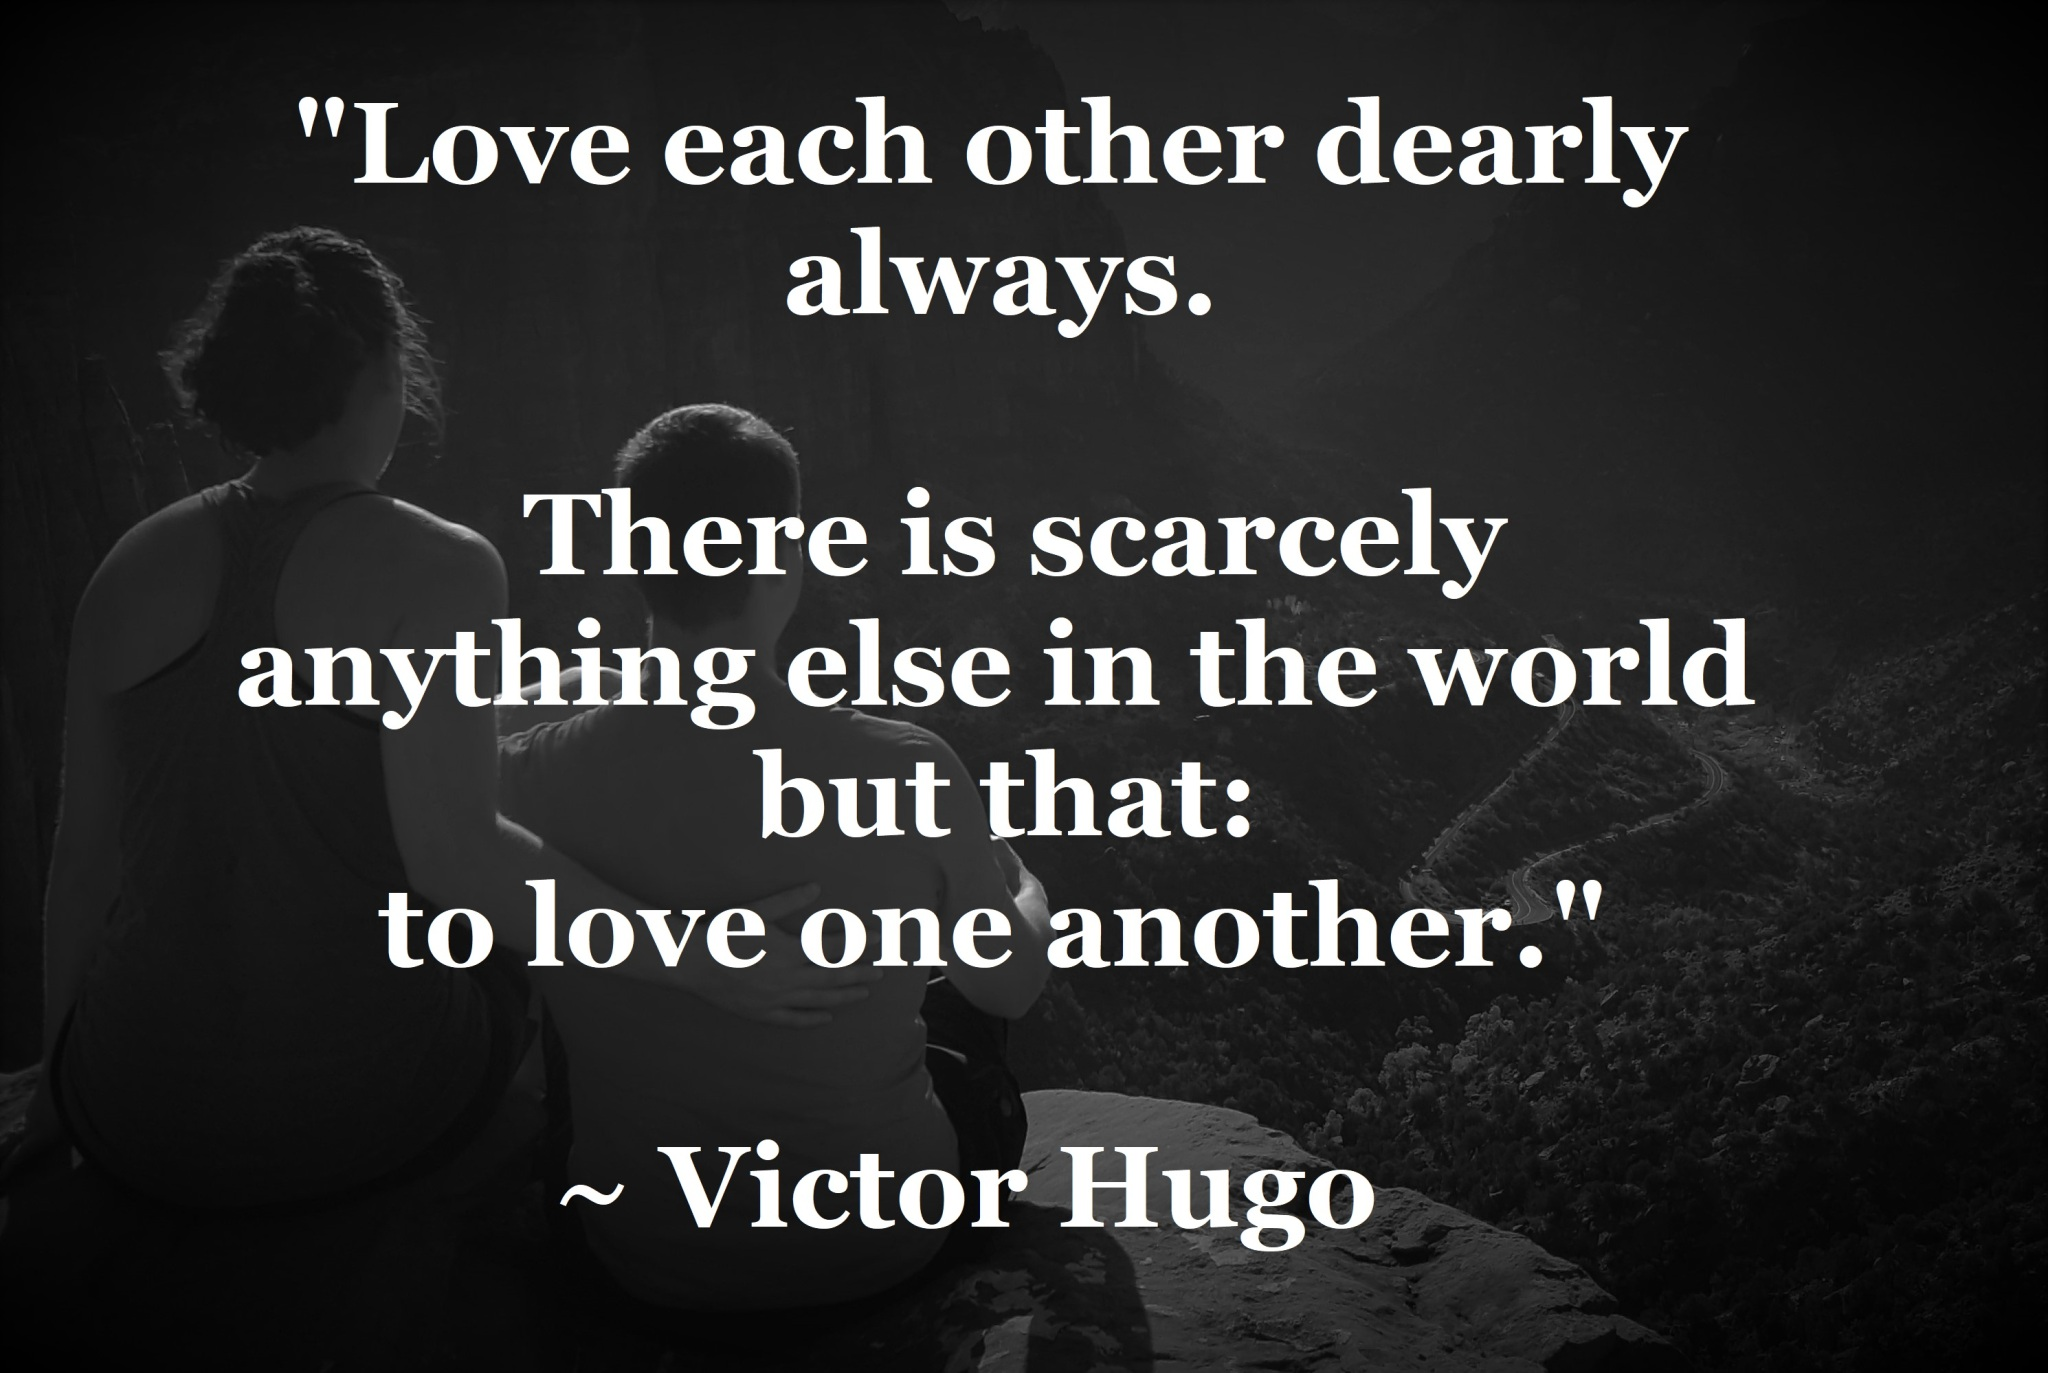 Victor Hugo - nothing in the world but to love